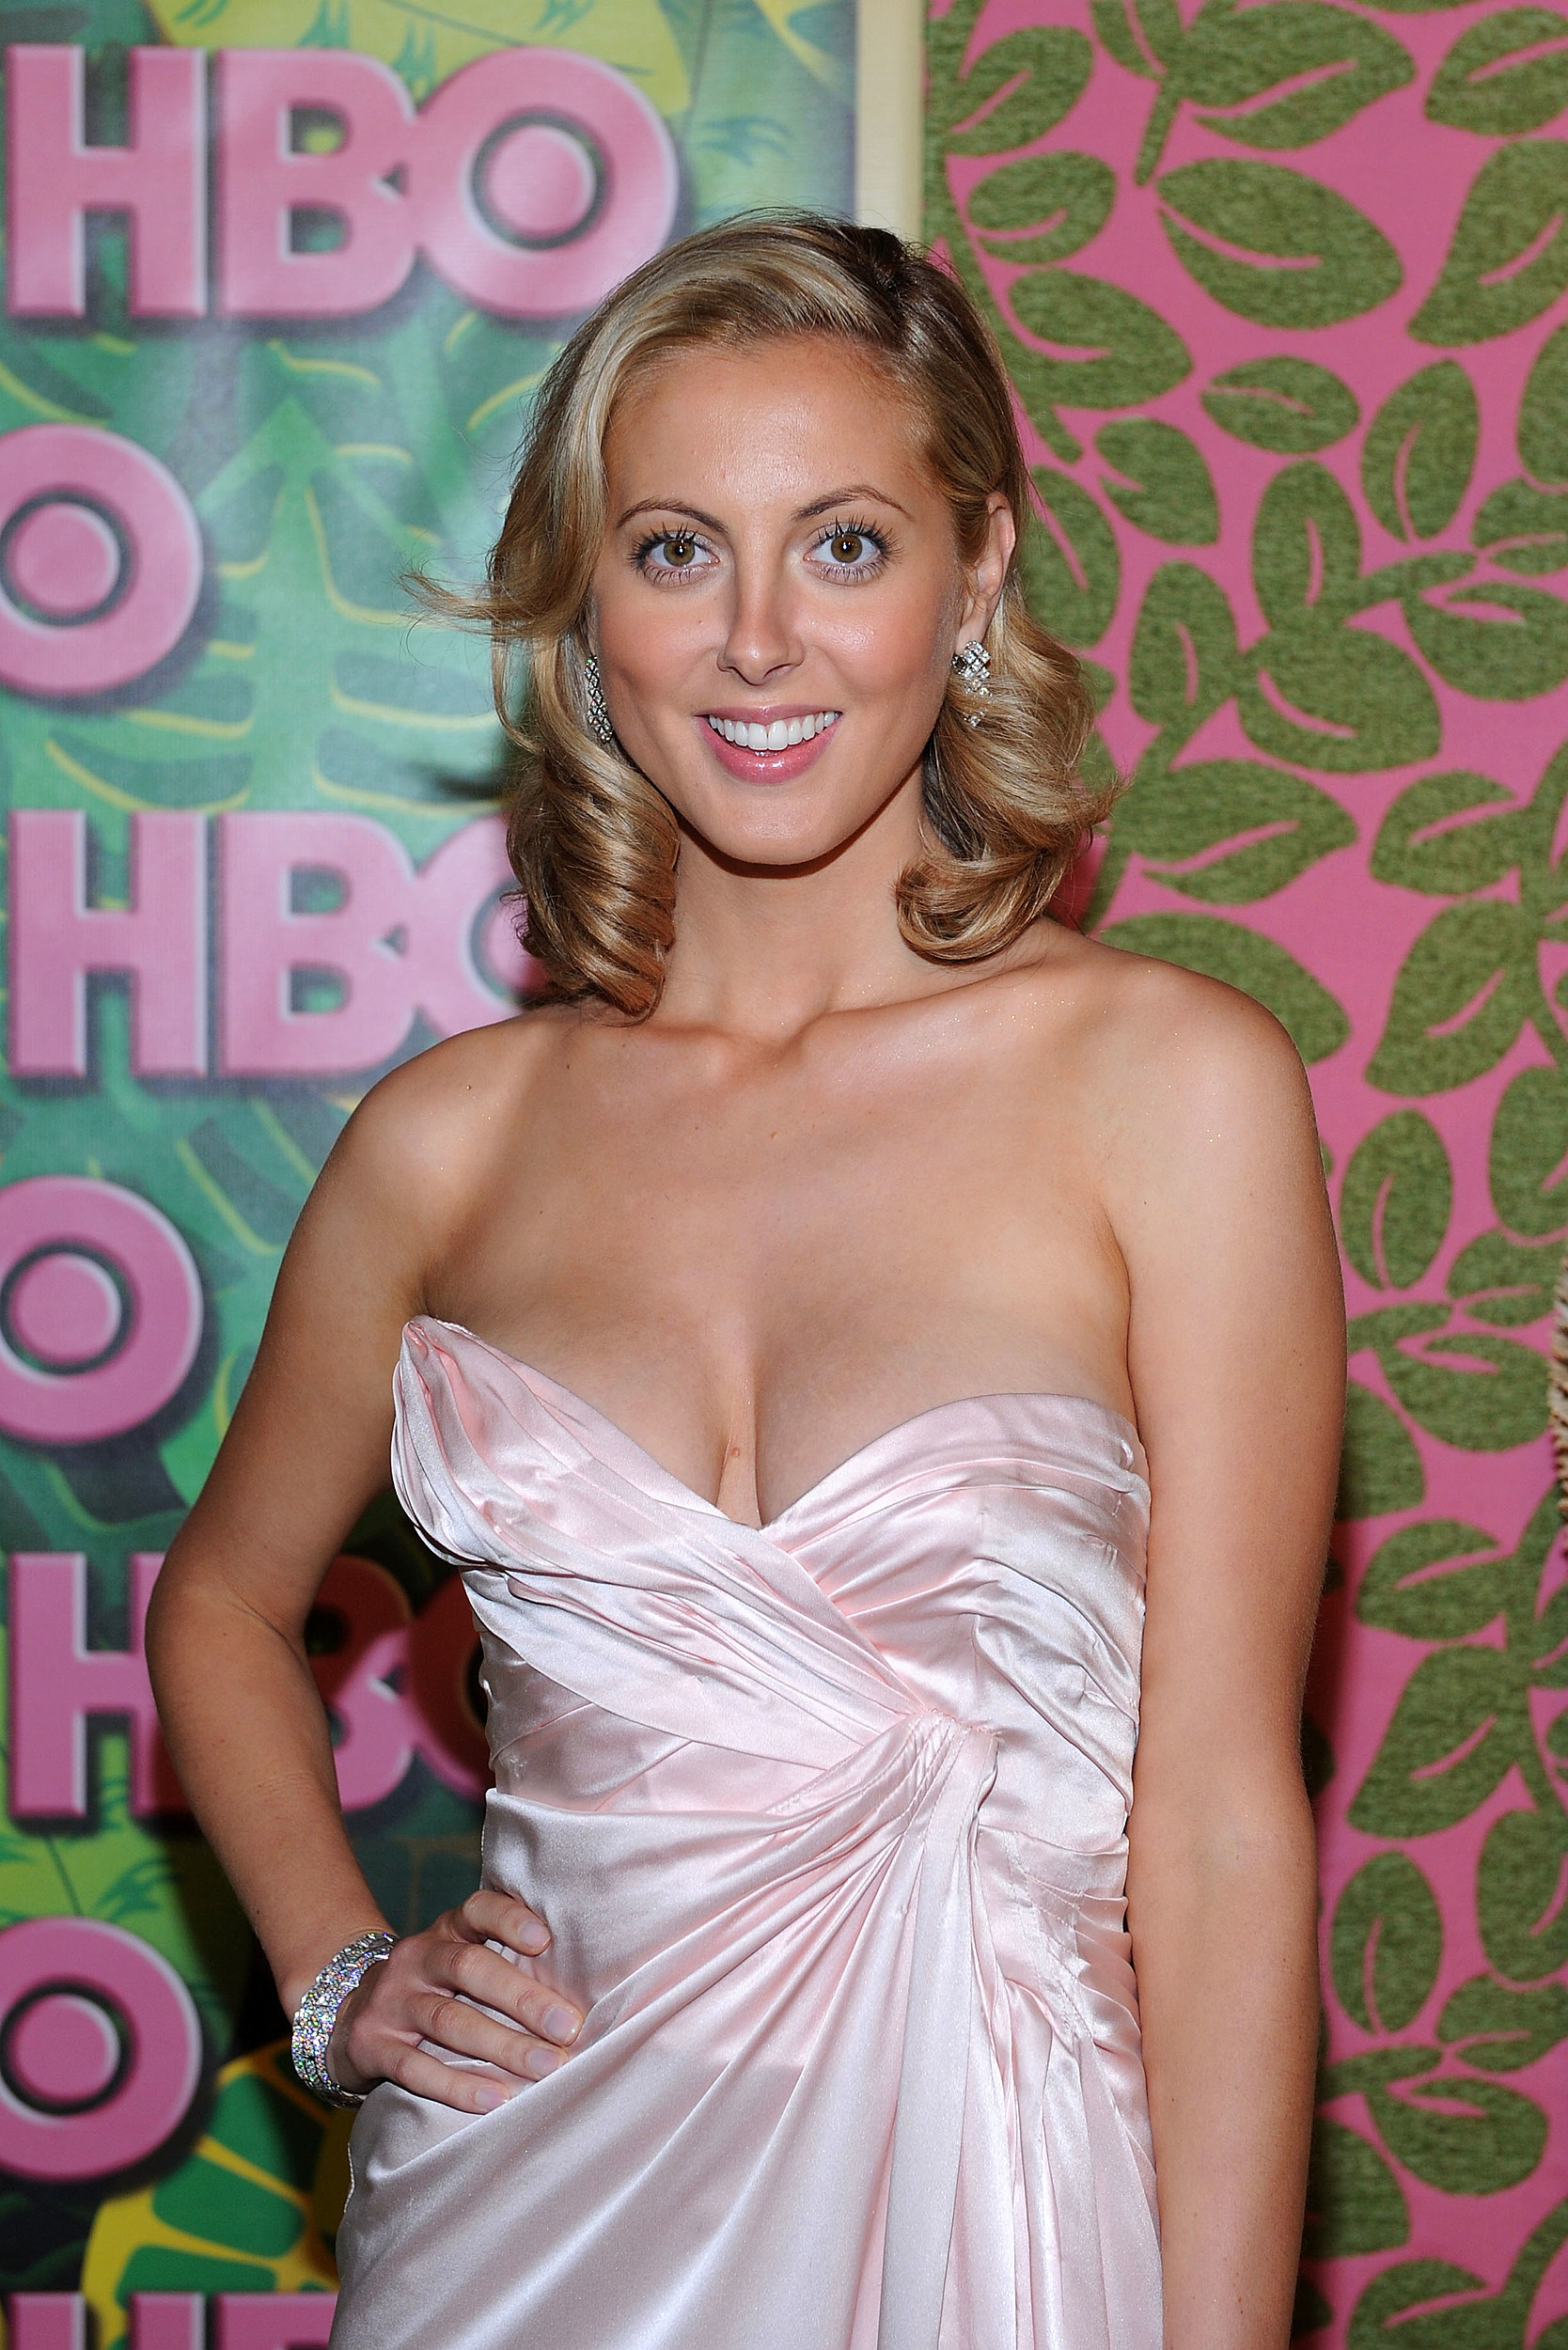 Cleavage Eva Amurri naked (19 photos), Tits, Sideboobs, Instagram, legs 2018